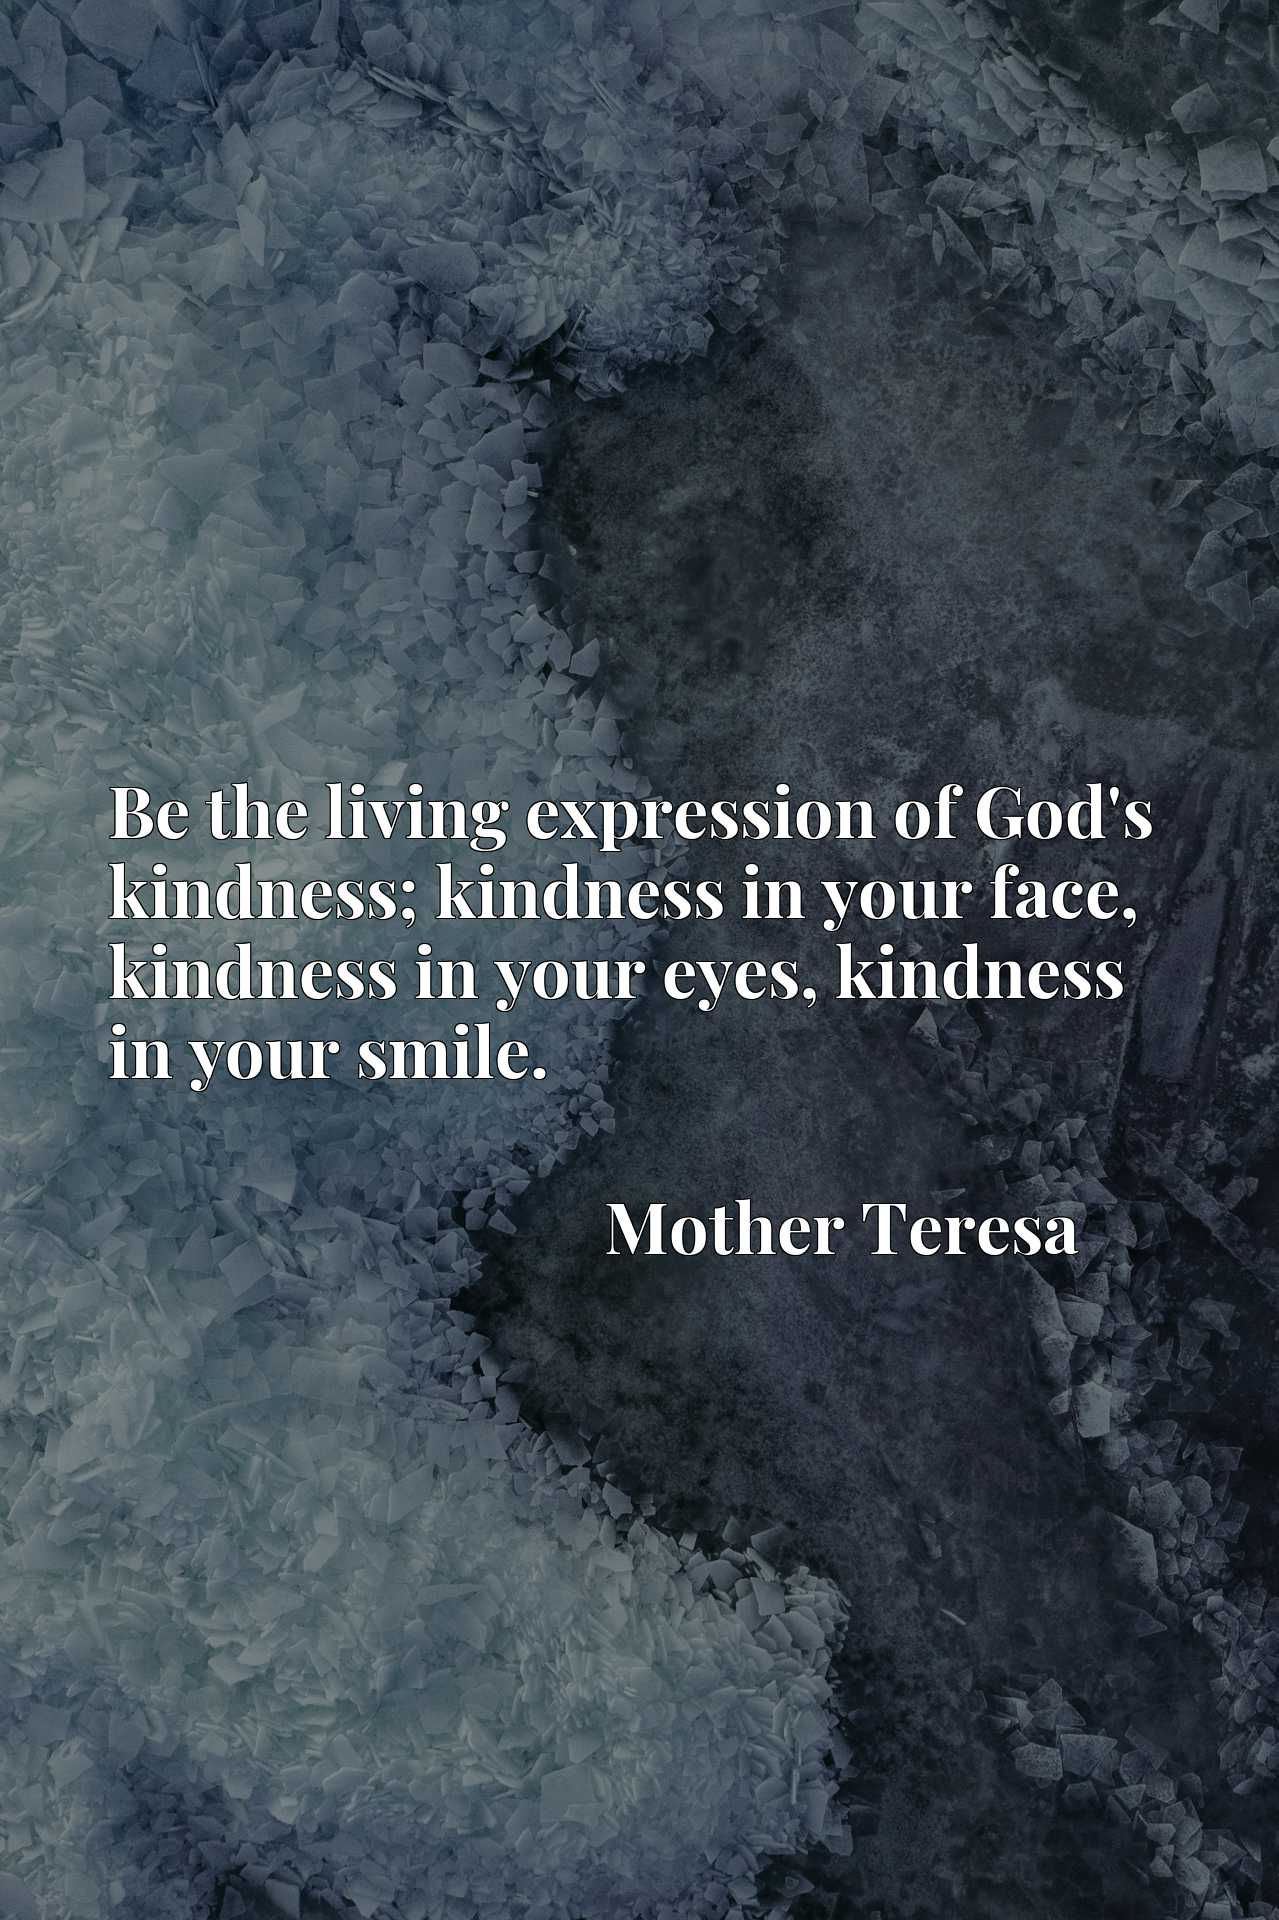 Be the living expression of God's kindness; kindness in your face, kindness in your eyes, kindness in your smile.